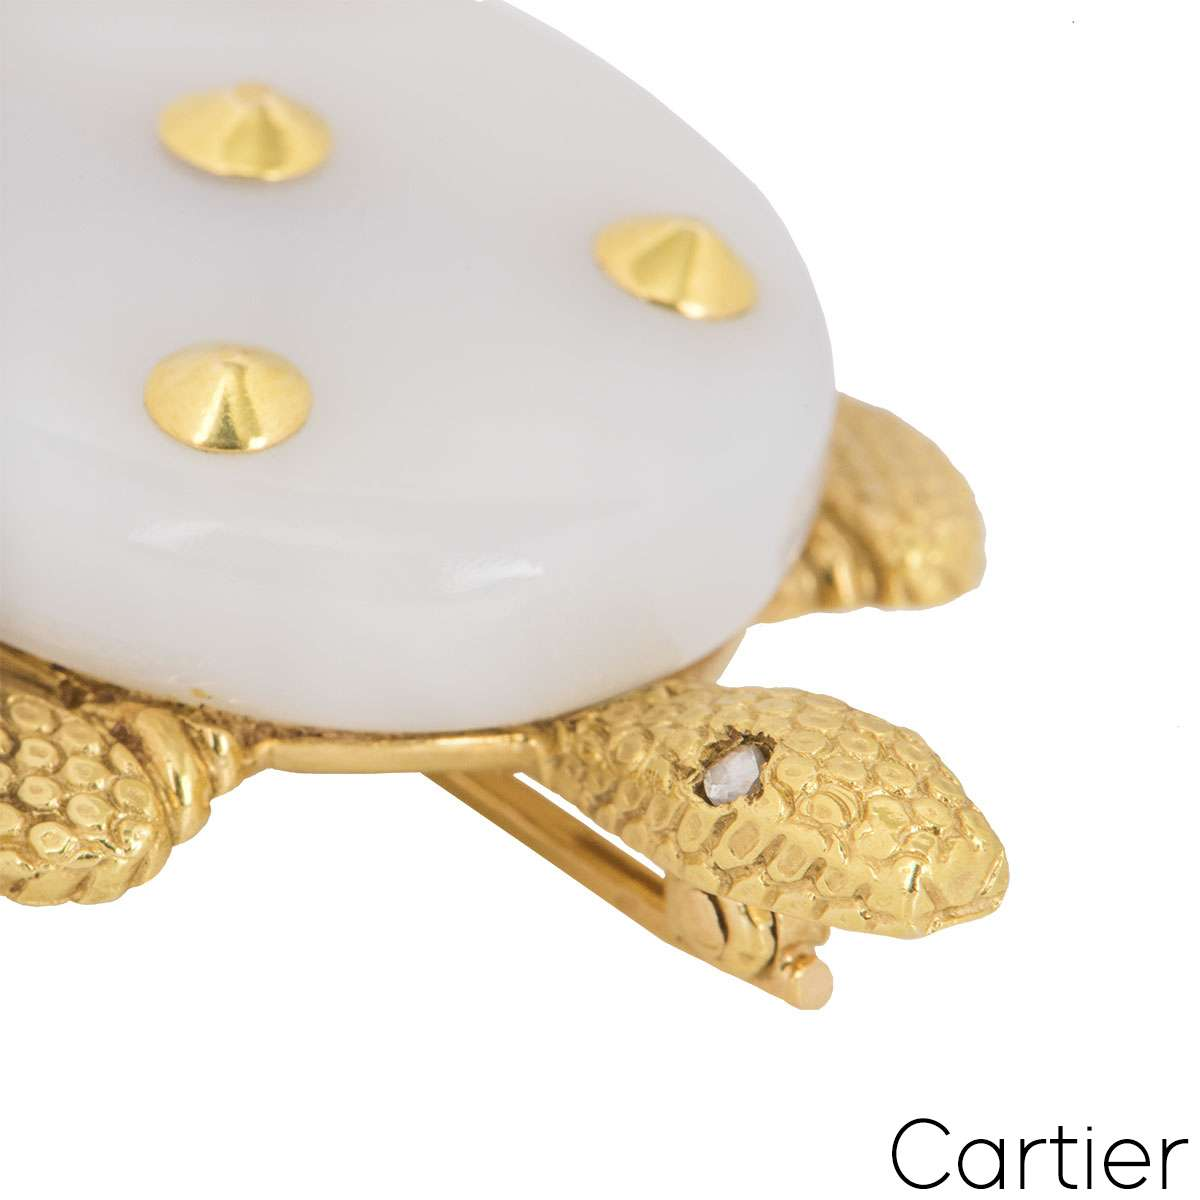 Cartier Yellow Gold Chalcedony Turtle Brooch